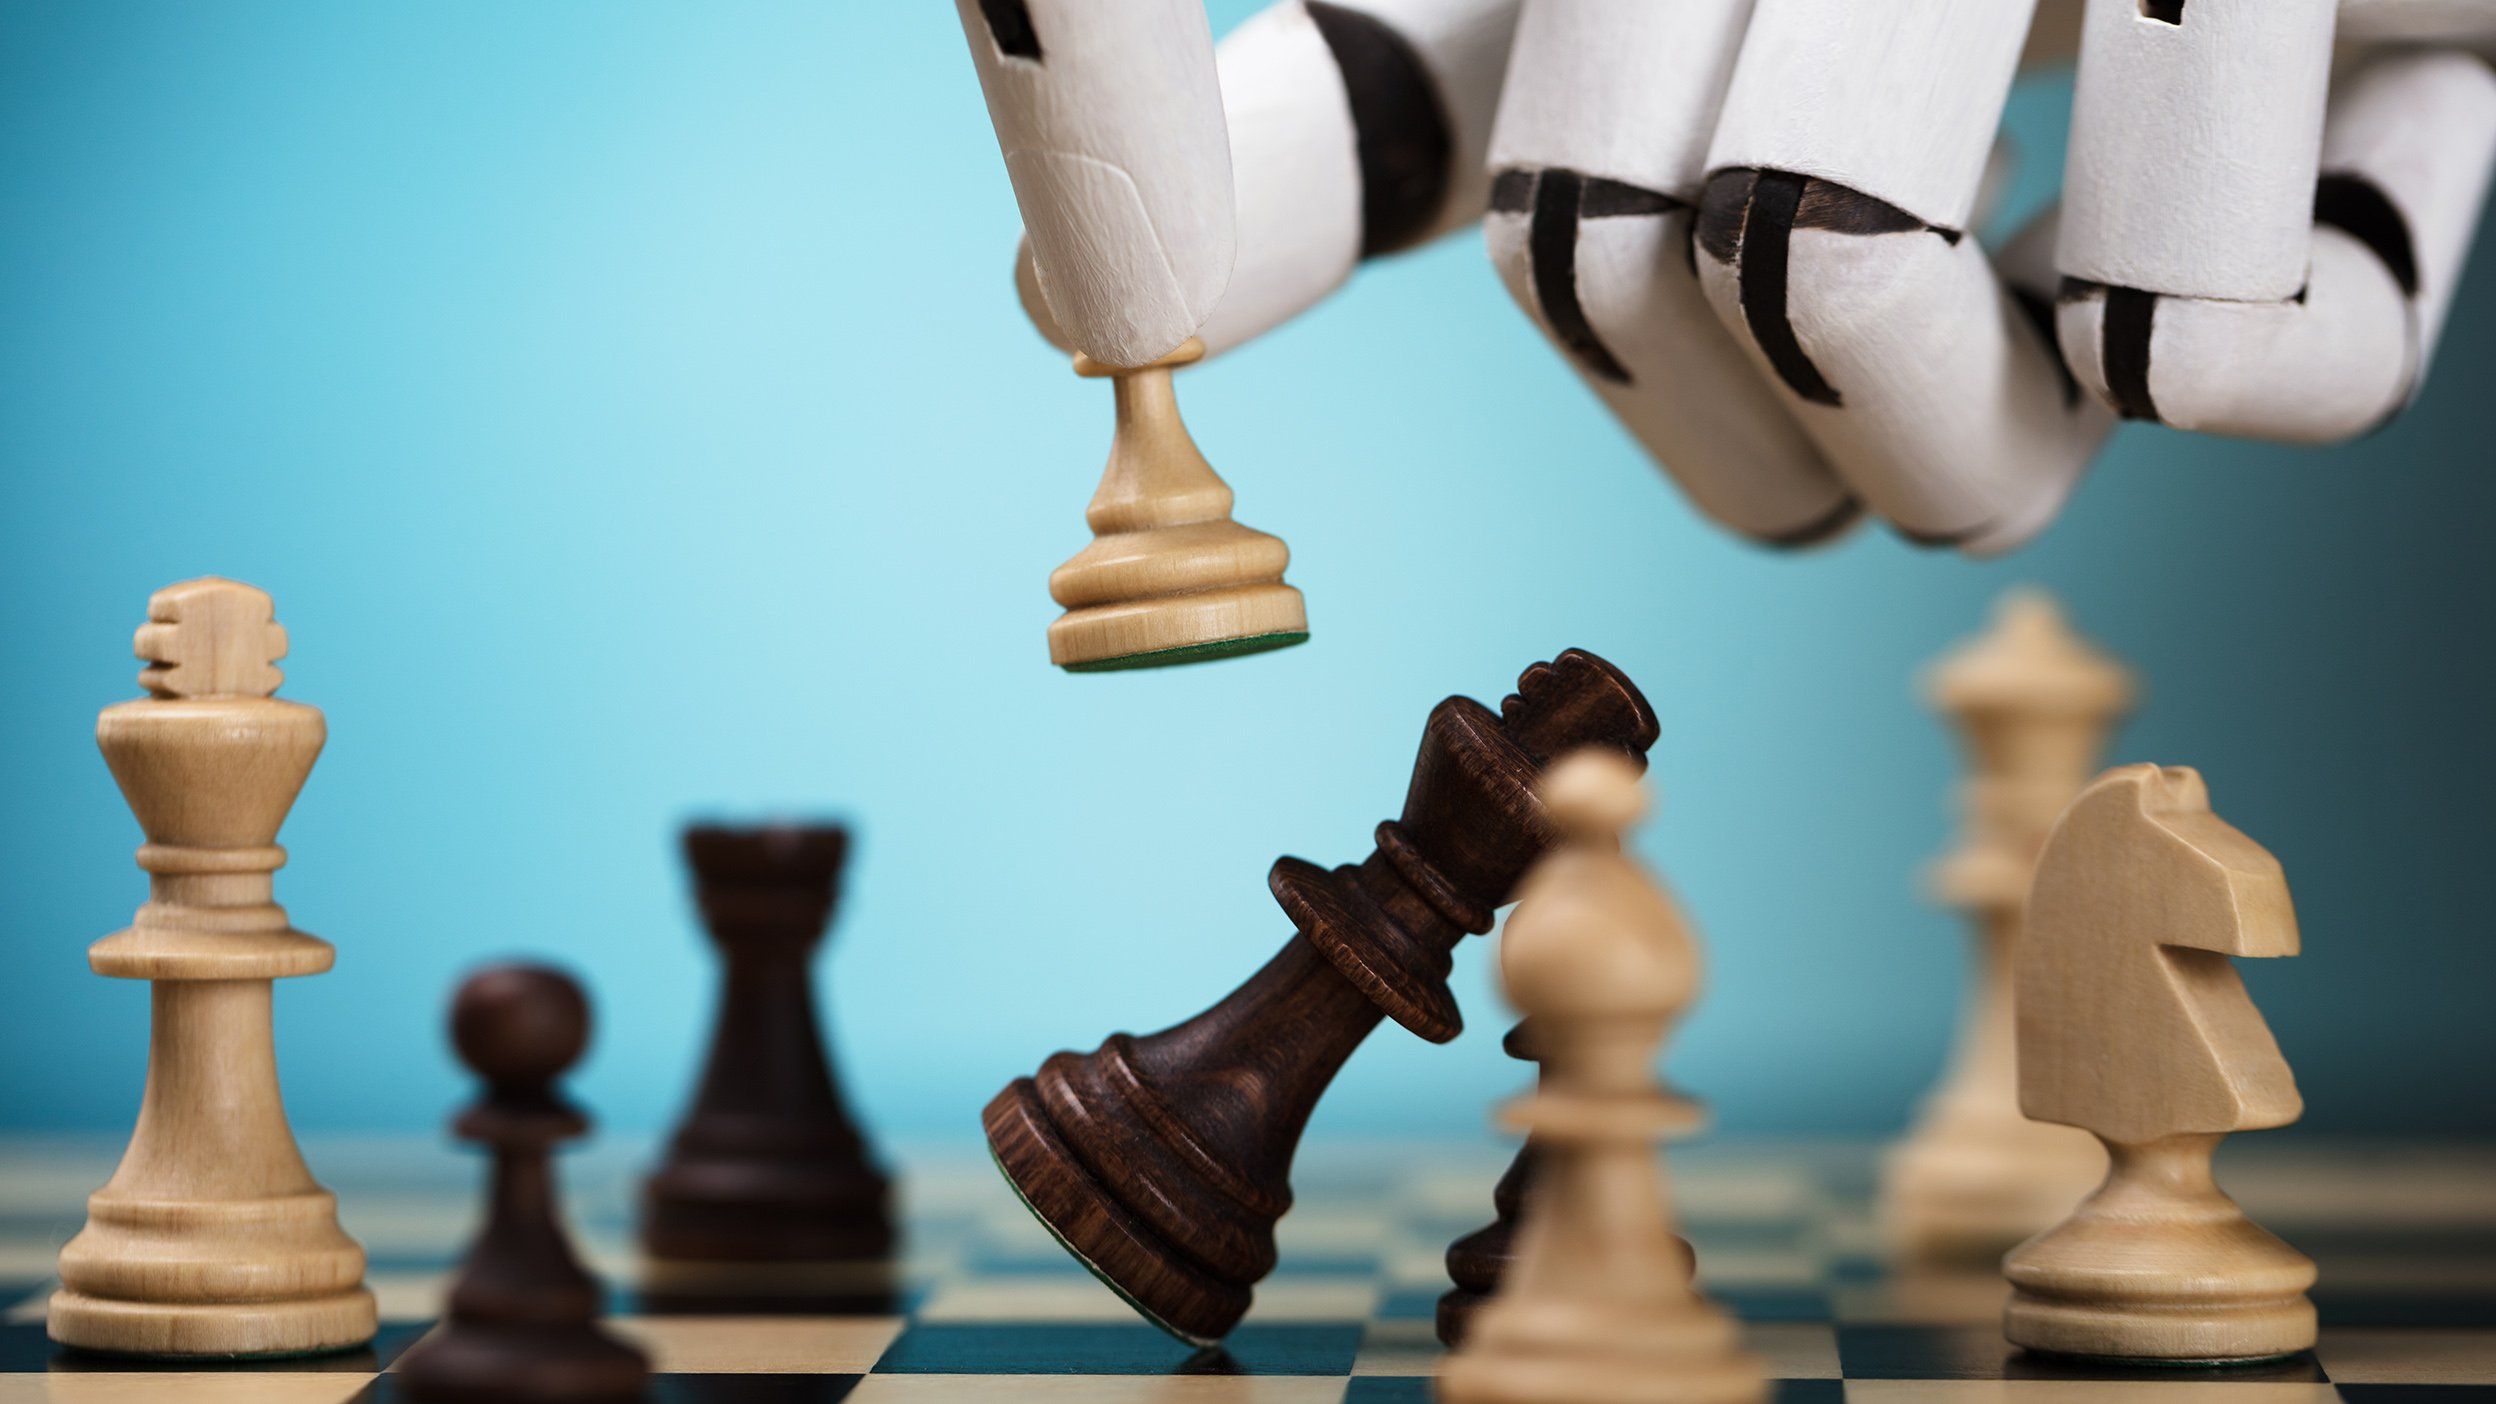 Google says it built a 'superhuman' game-playing AI. Is it truly intelligent?